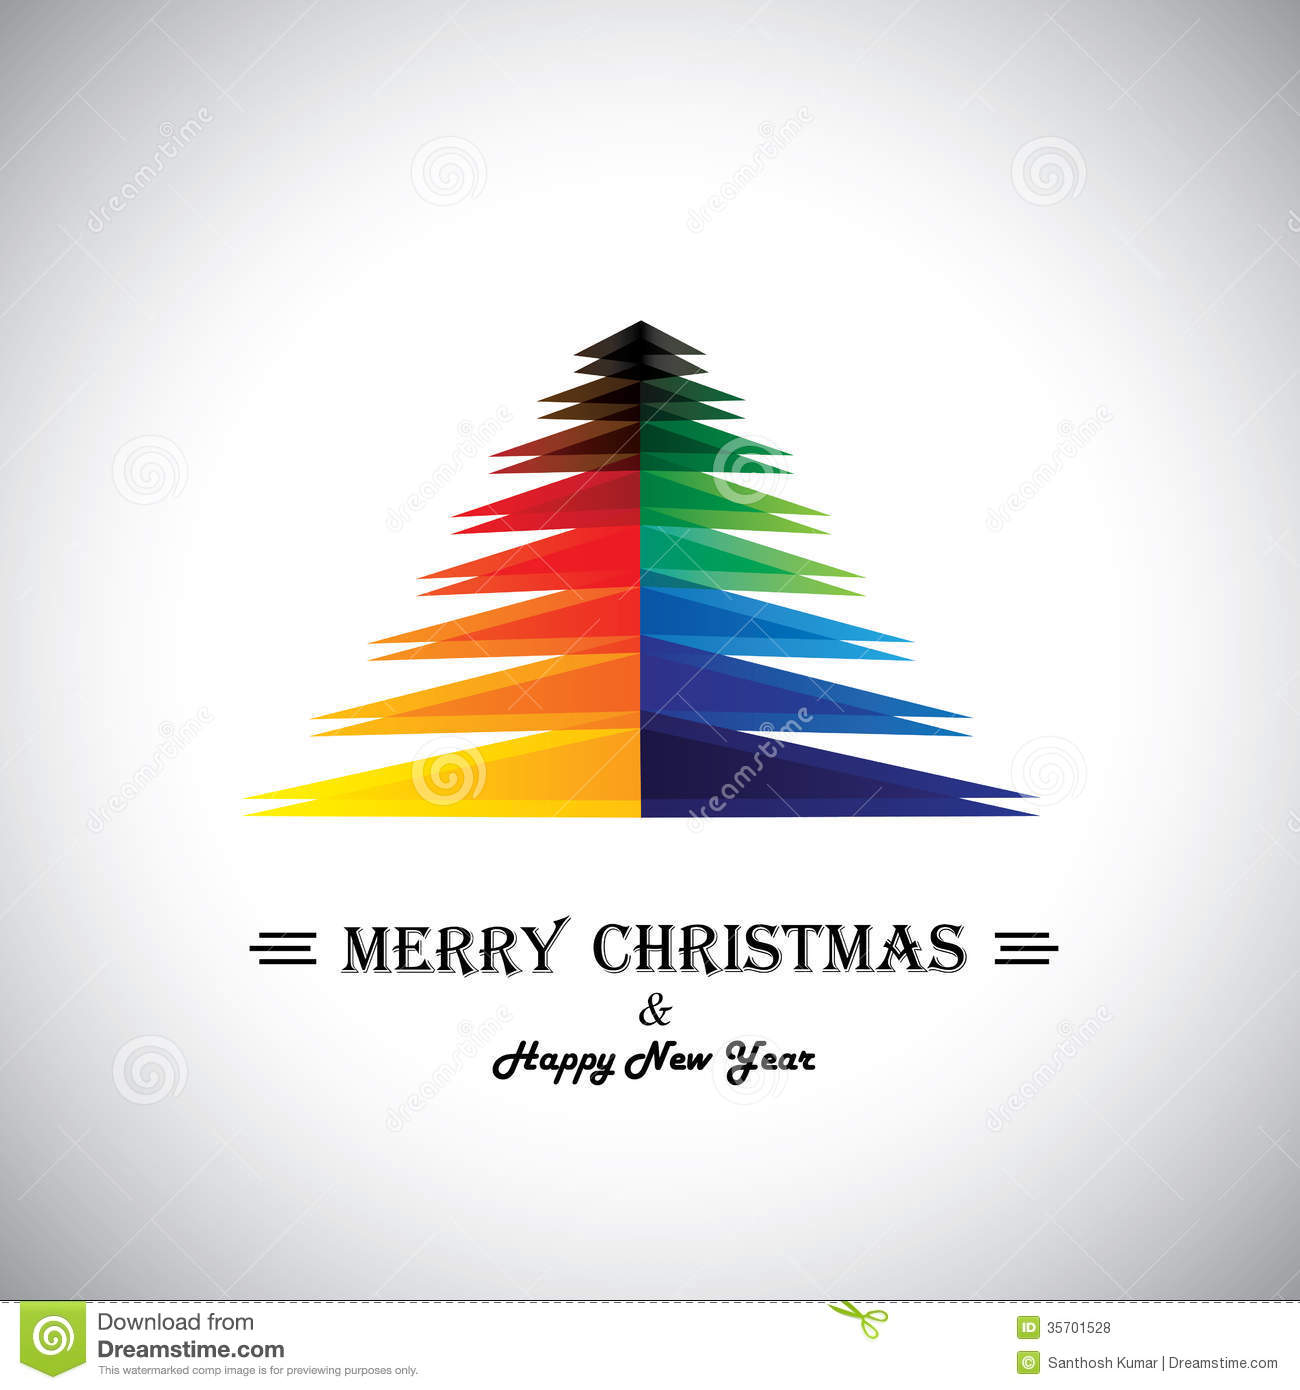 Colorful abstract merry christmas card & xmas tree